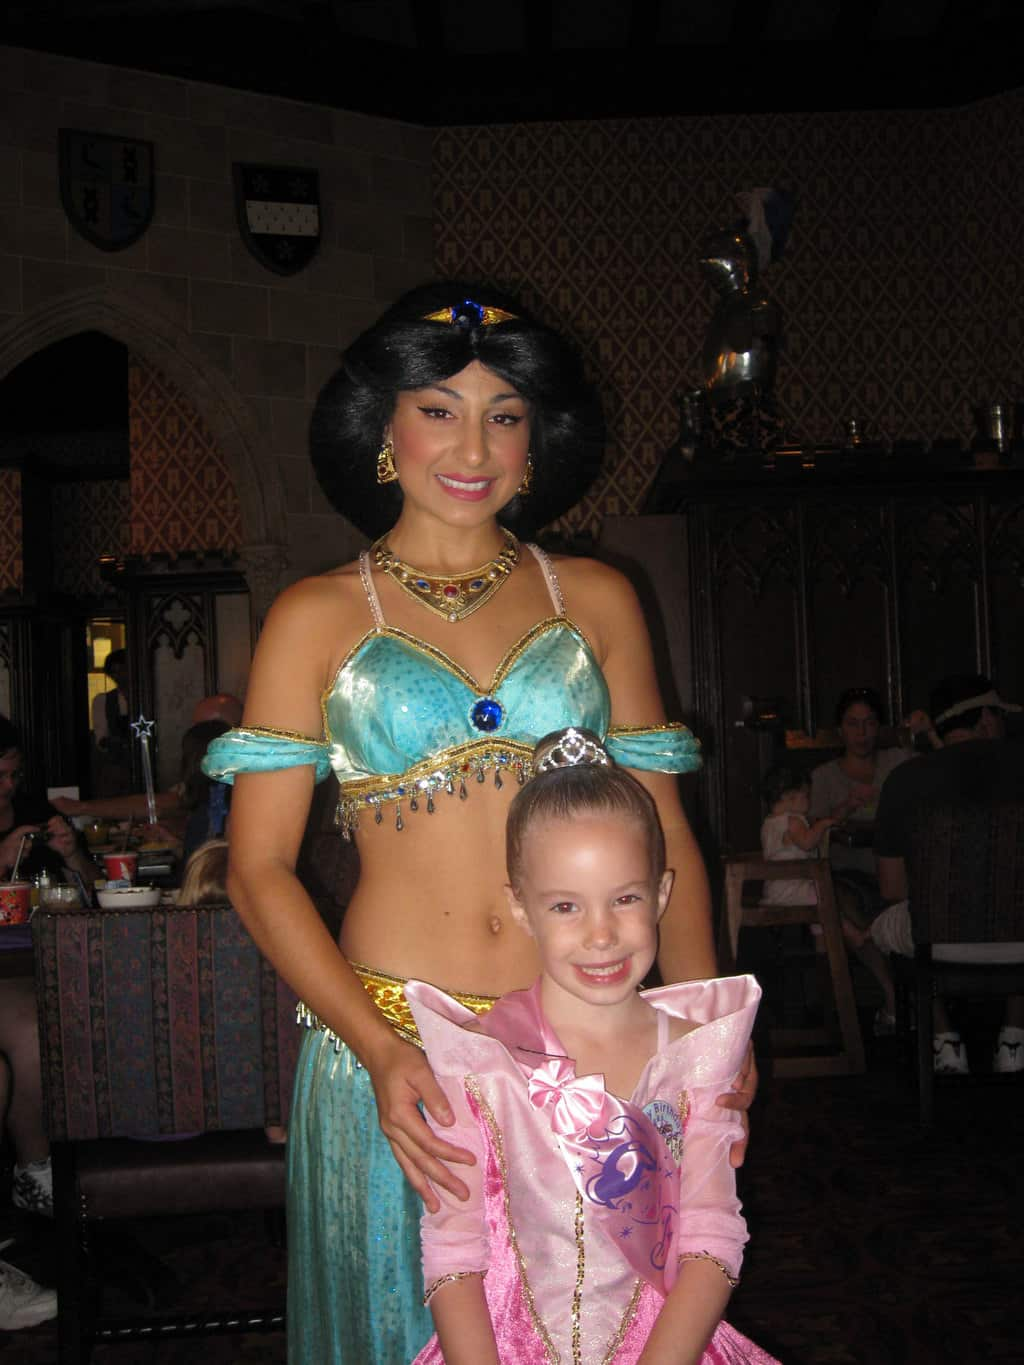 Jasmine at Cinderella's Royal Table 2009